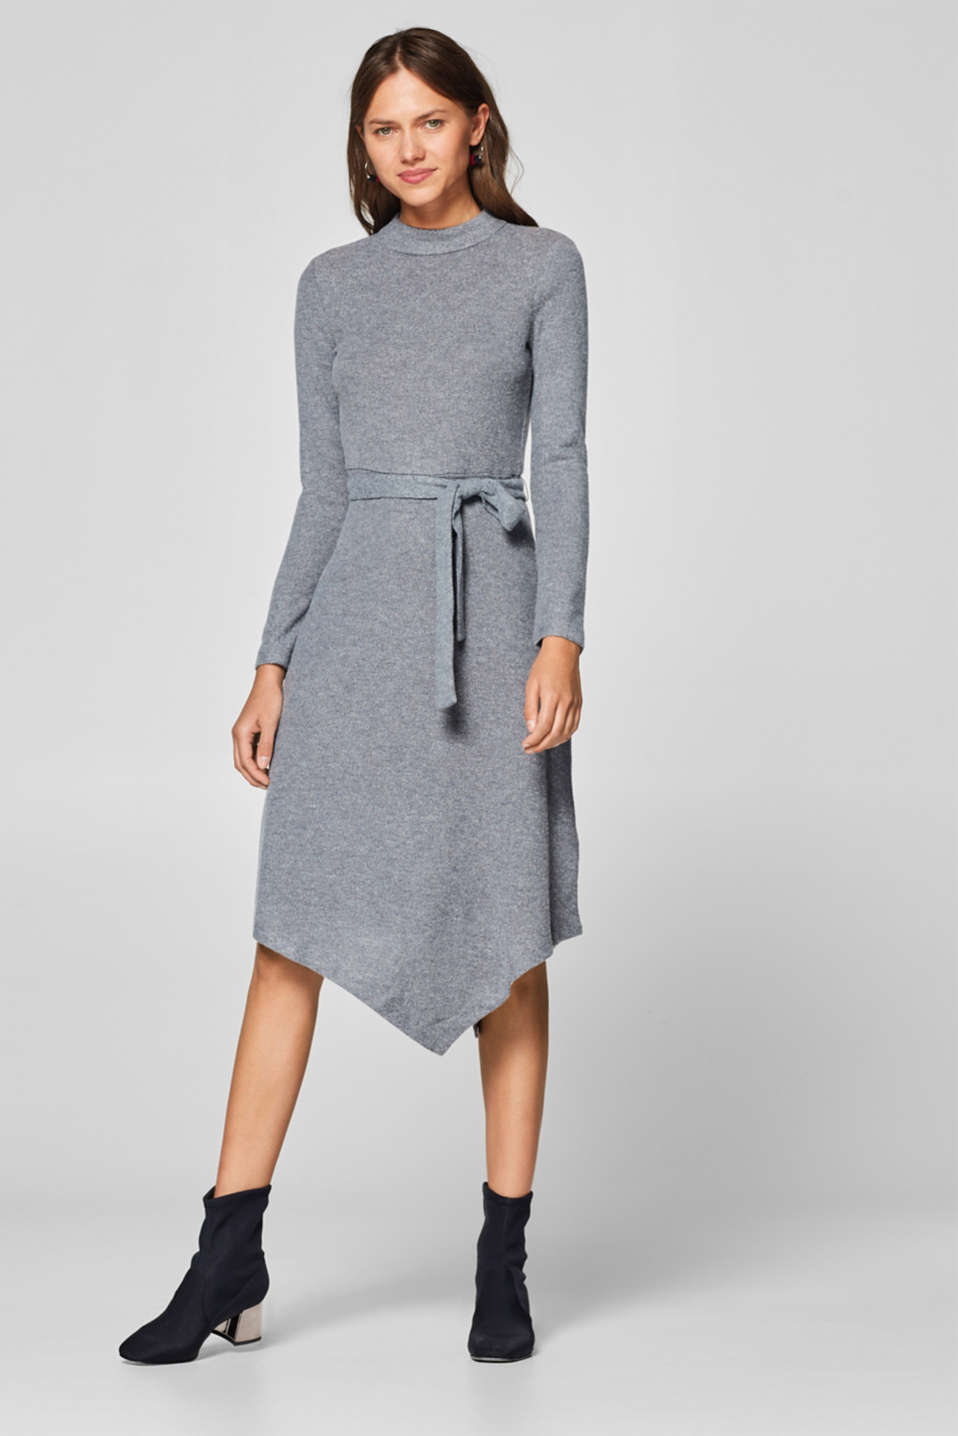 Esprit - Stretch jersey dress with an asymmetric hemline